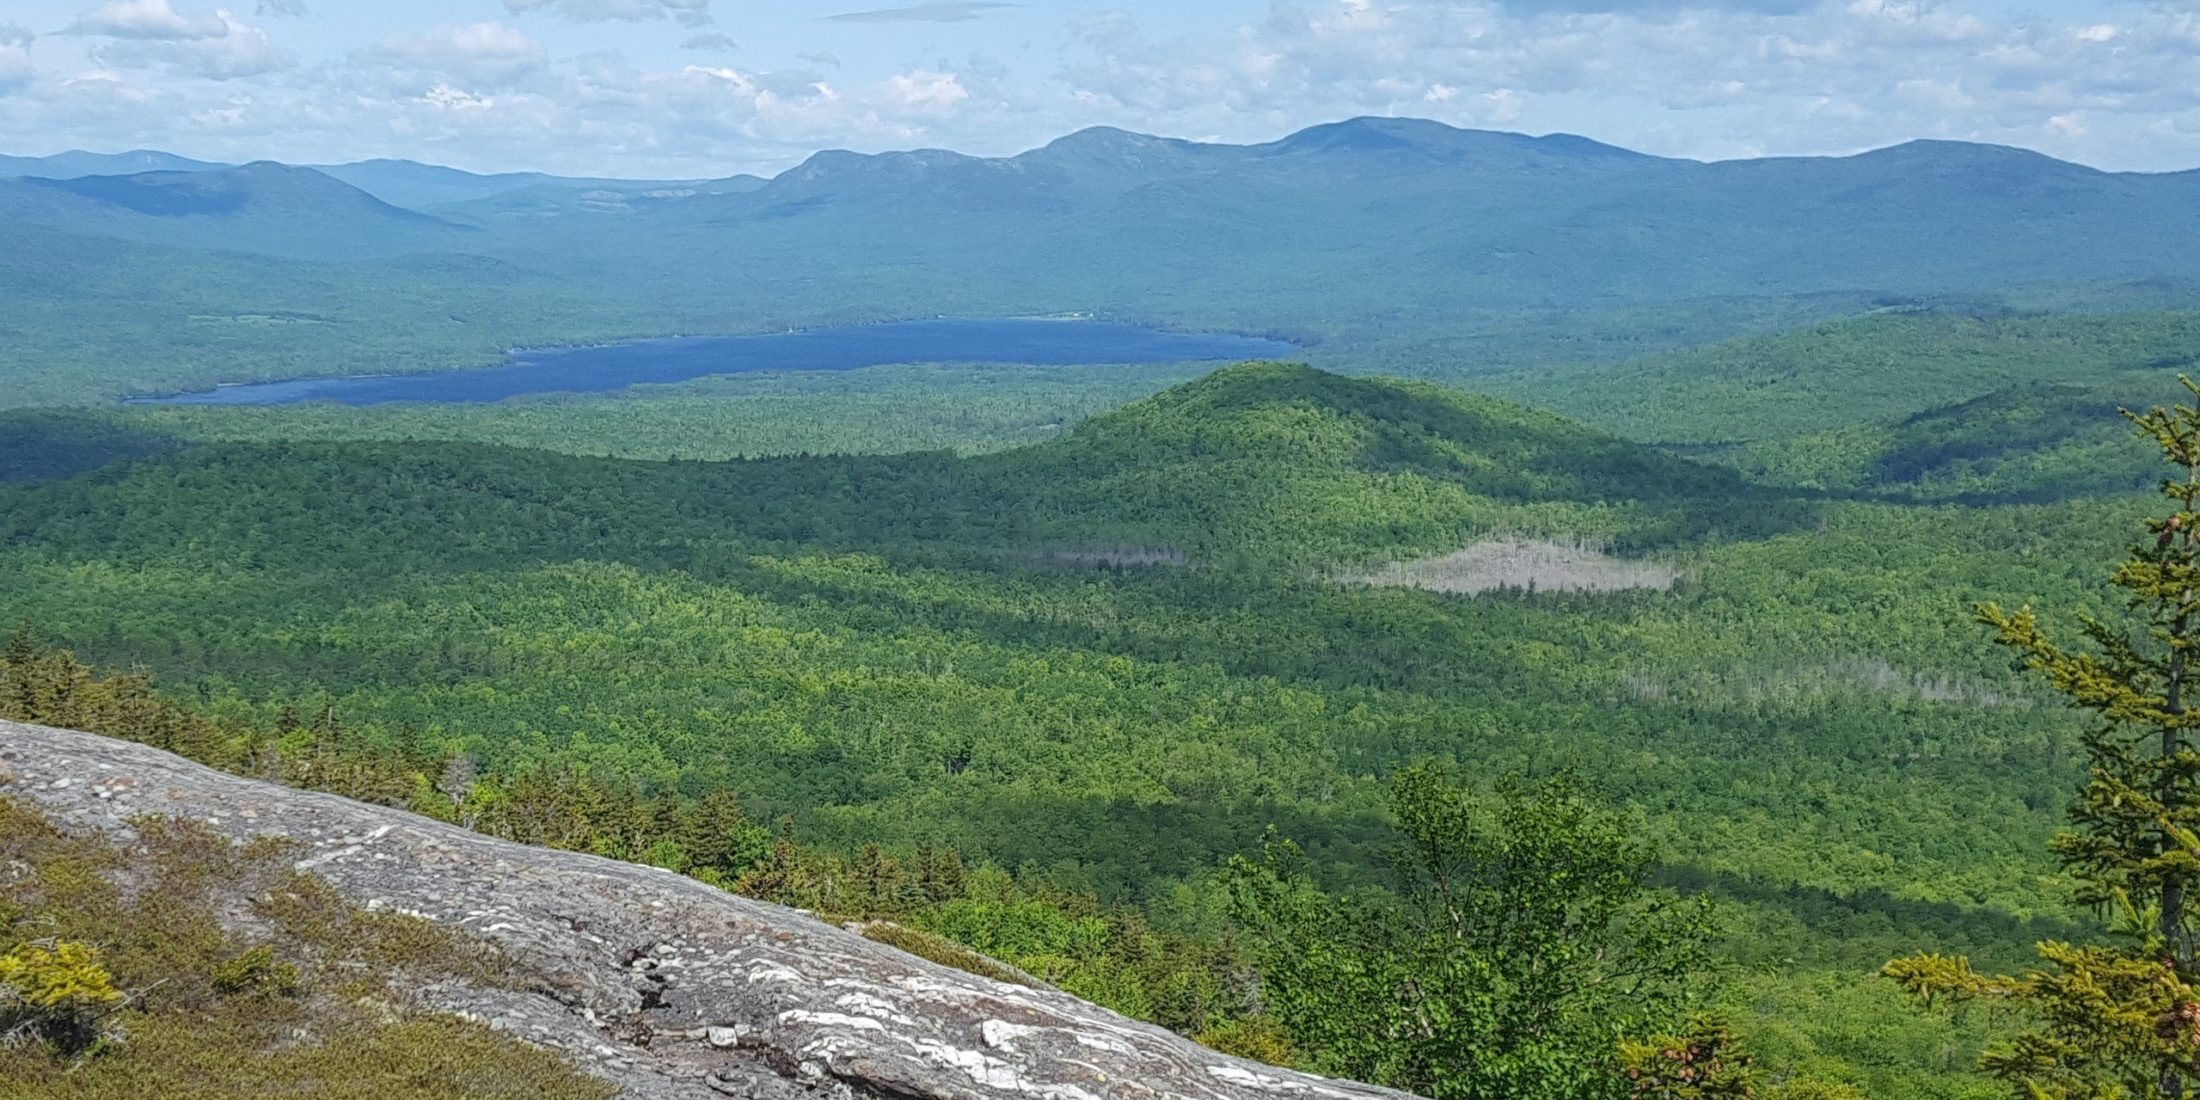 View of Tumbledown Mountain, conserved with LMF support between 2001 and 2004